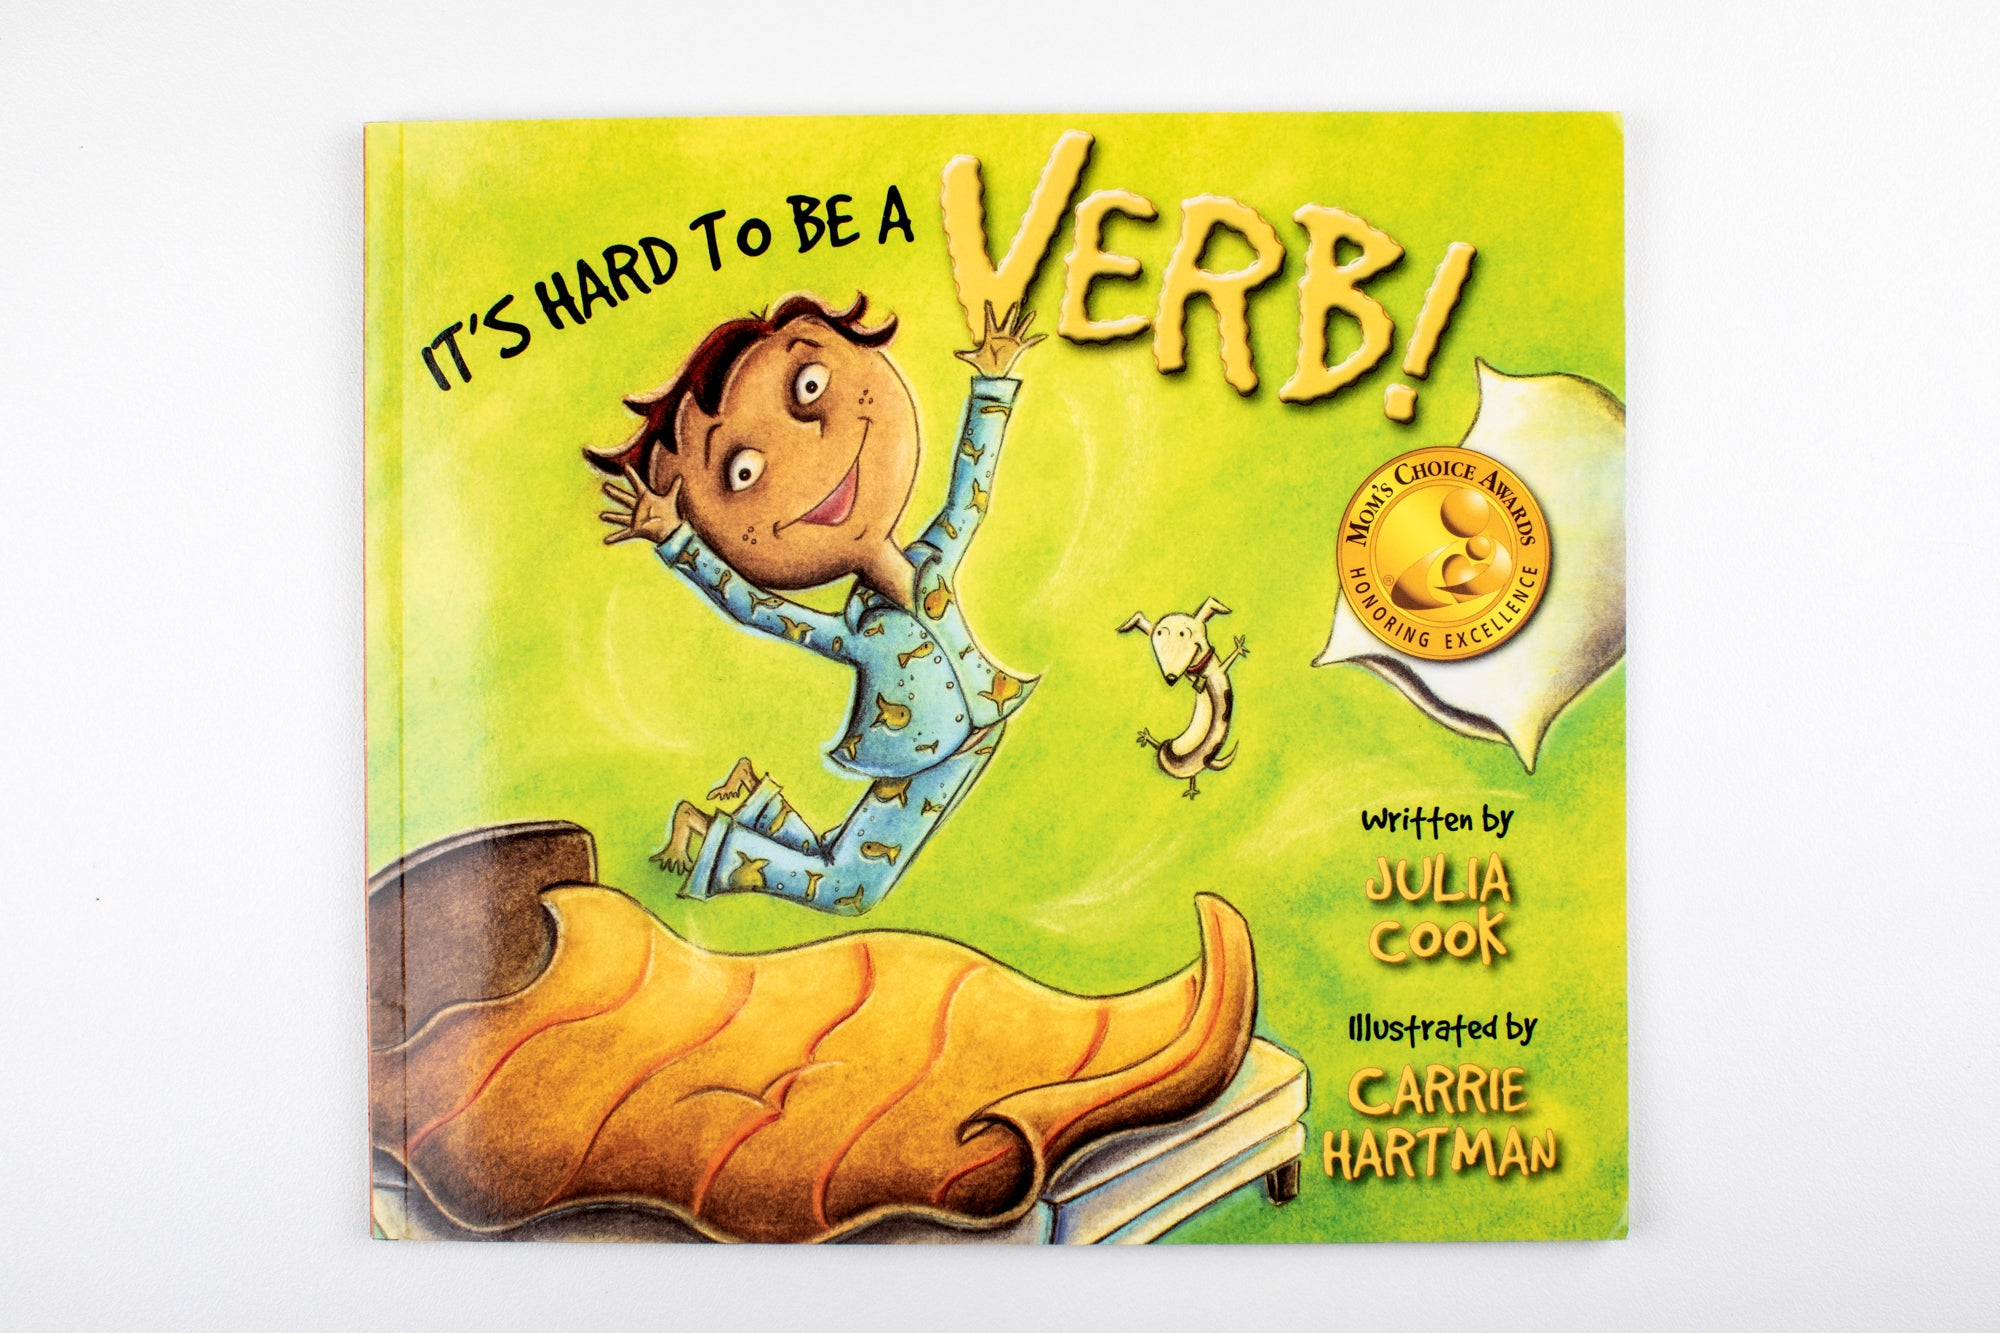 Book Julia Cook - It's Hard to be a Verb Image